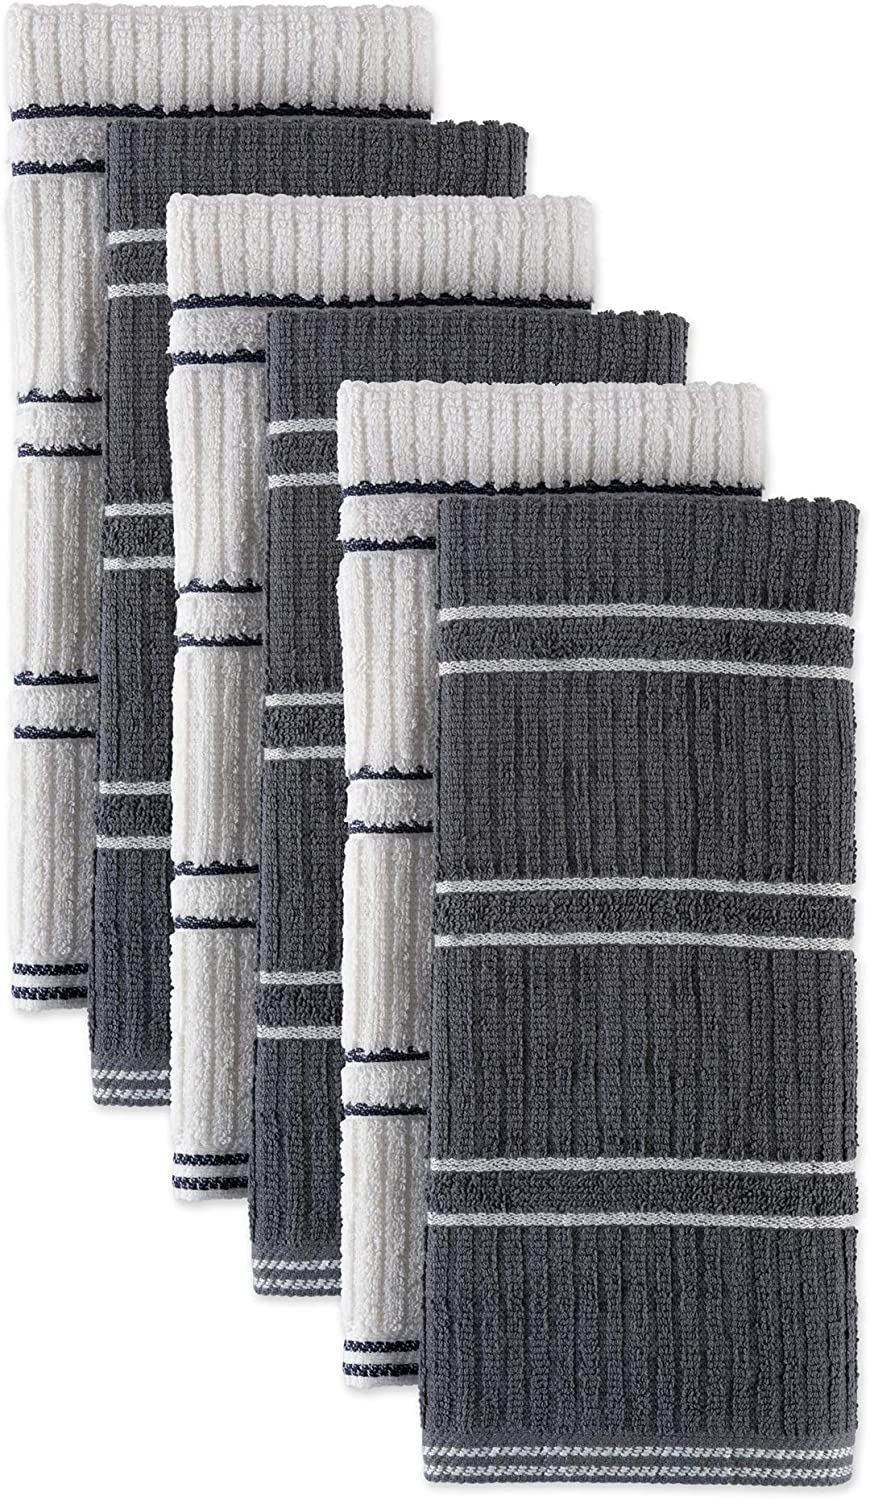 J&M Home Fashions 70322A Cotton Ribbed Terry Towel, Absorbent Durable Drying Cleaning Kitchen Cloths, 18X25, Gray 6 Pack